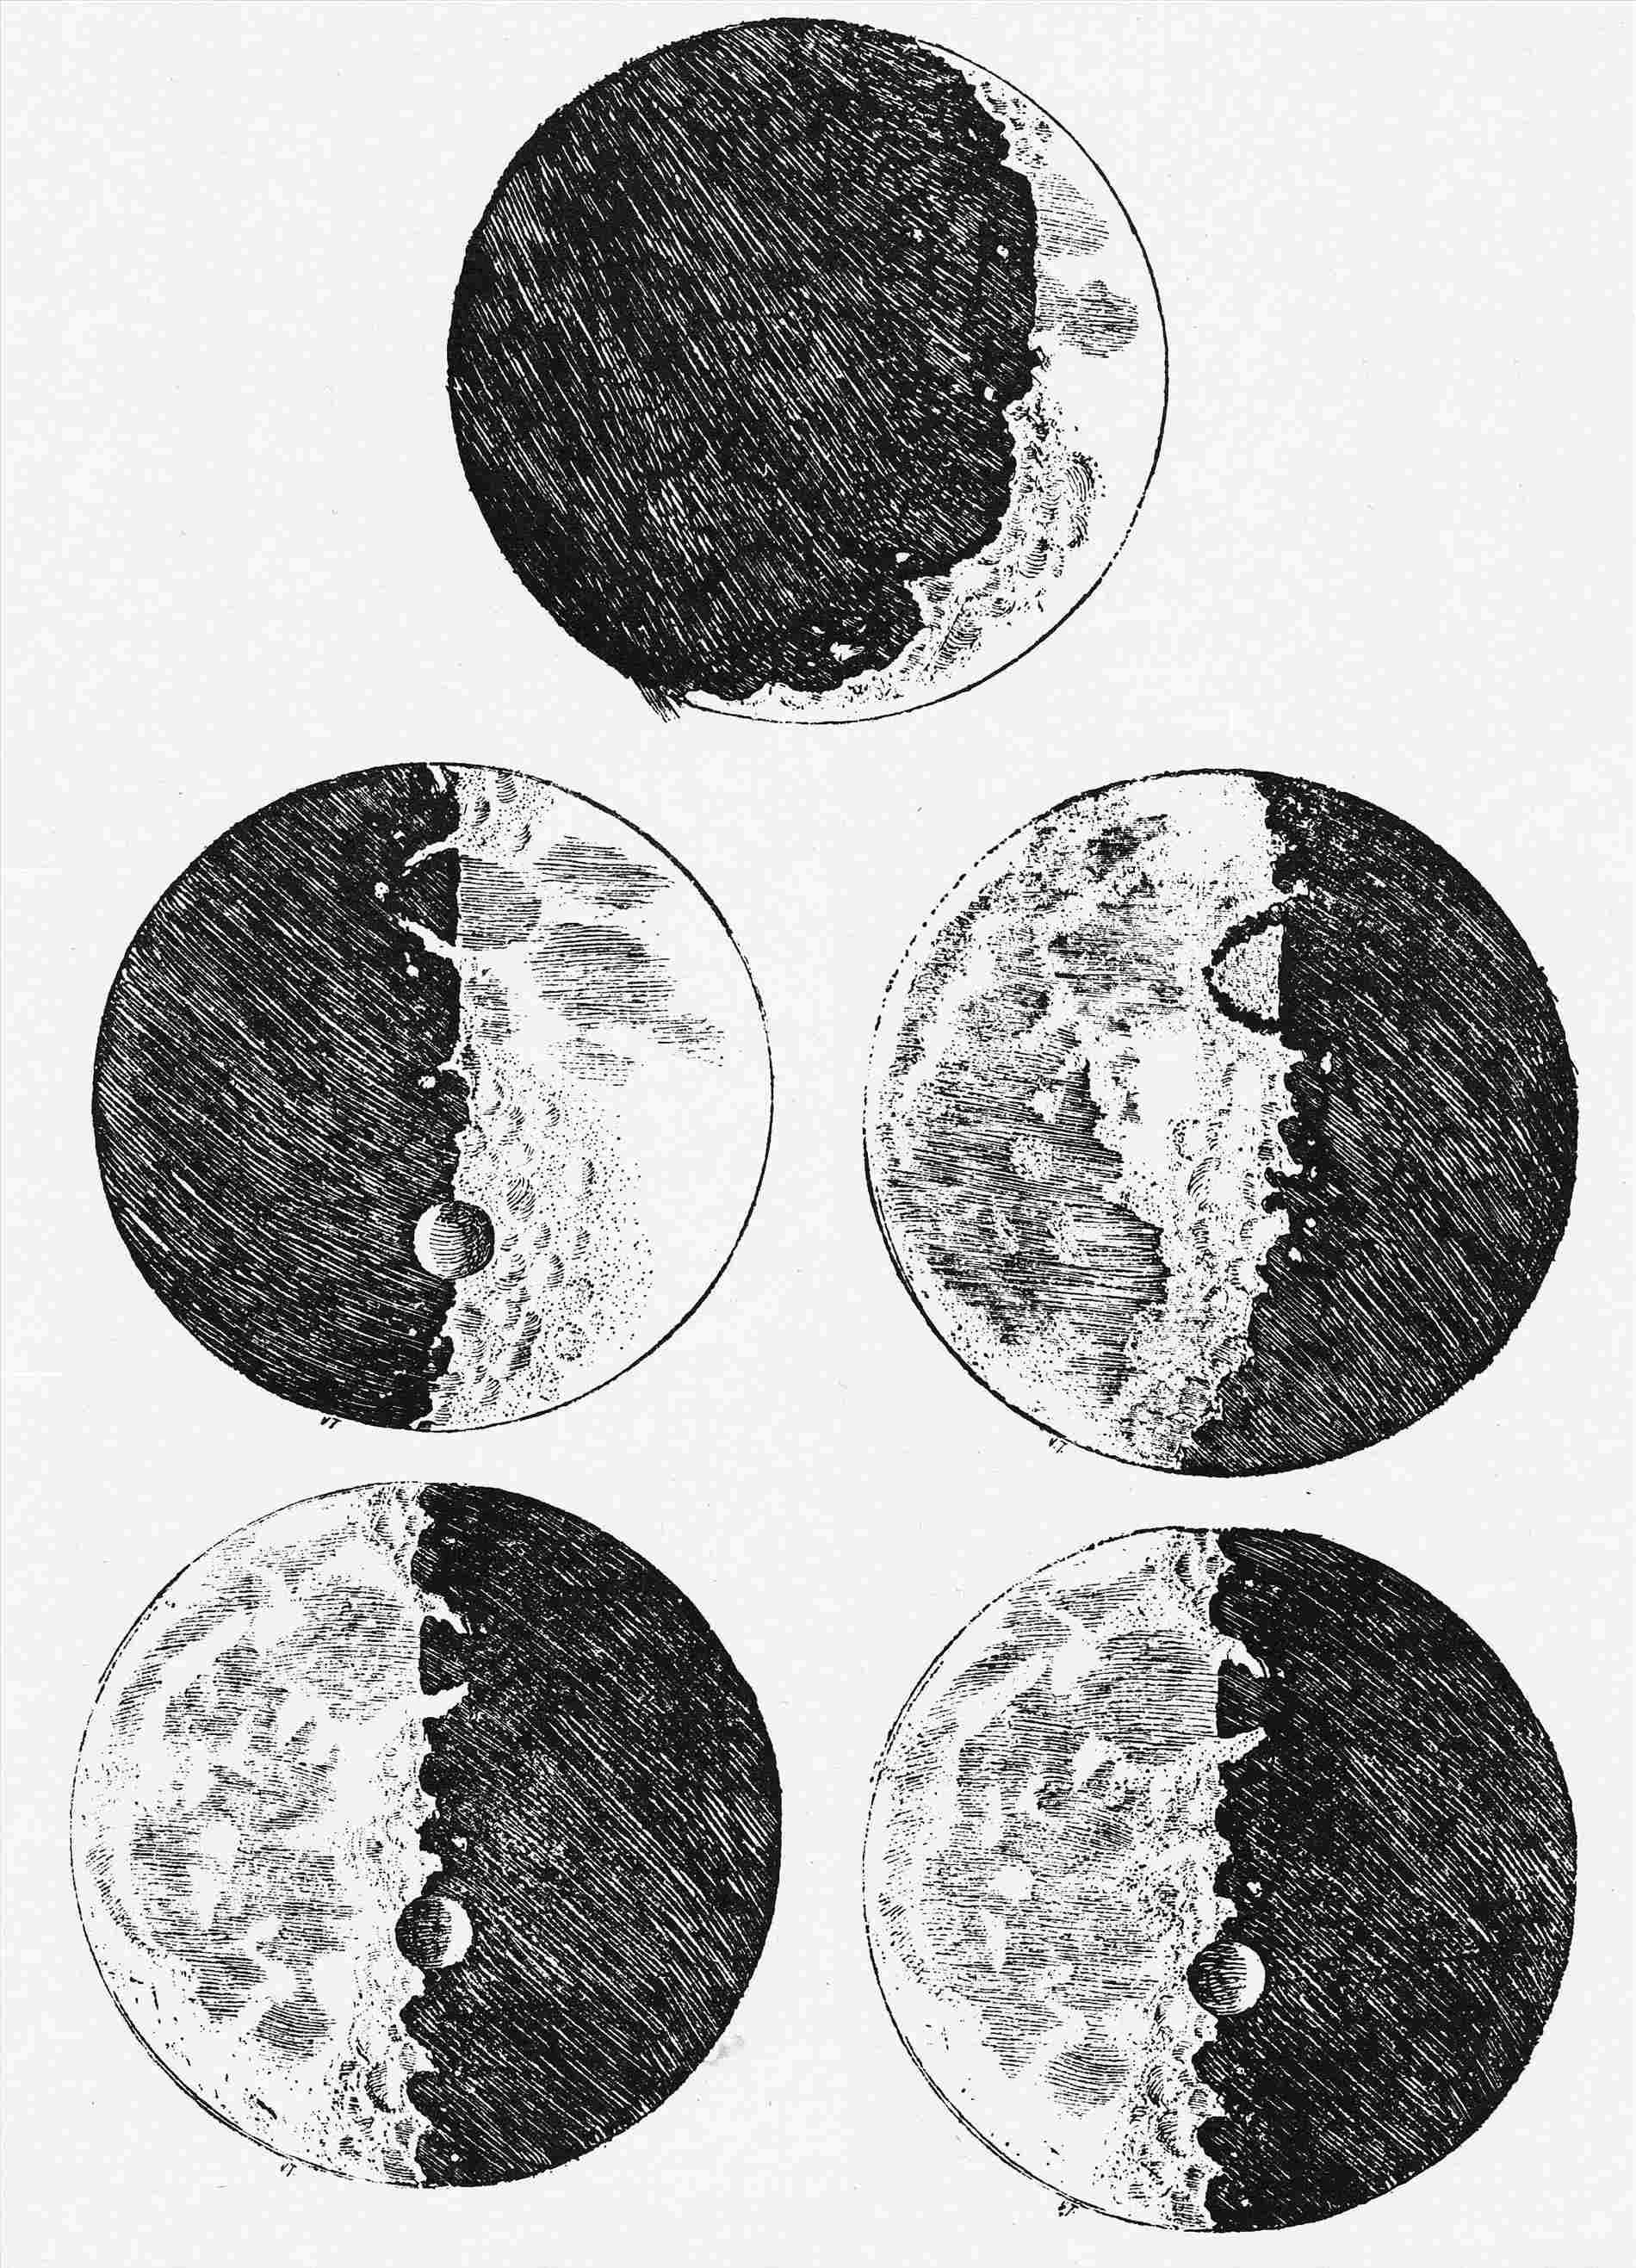 Full Moon Drawing Black And White Full Moon Drawing Easy At Paintingvalley Explore Collection